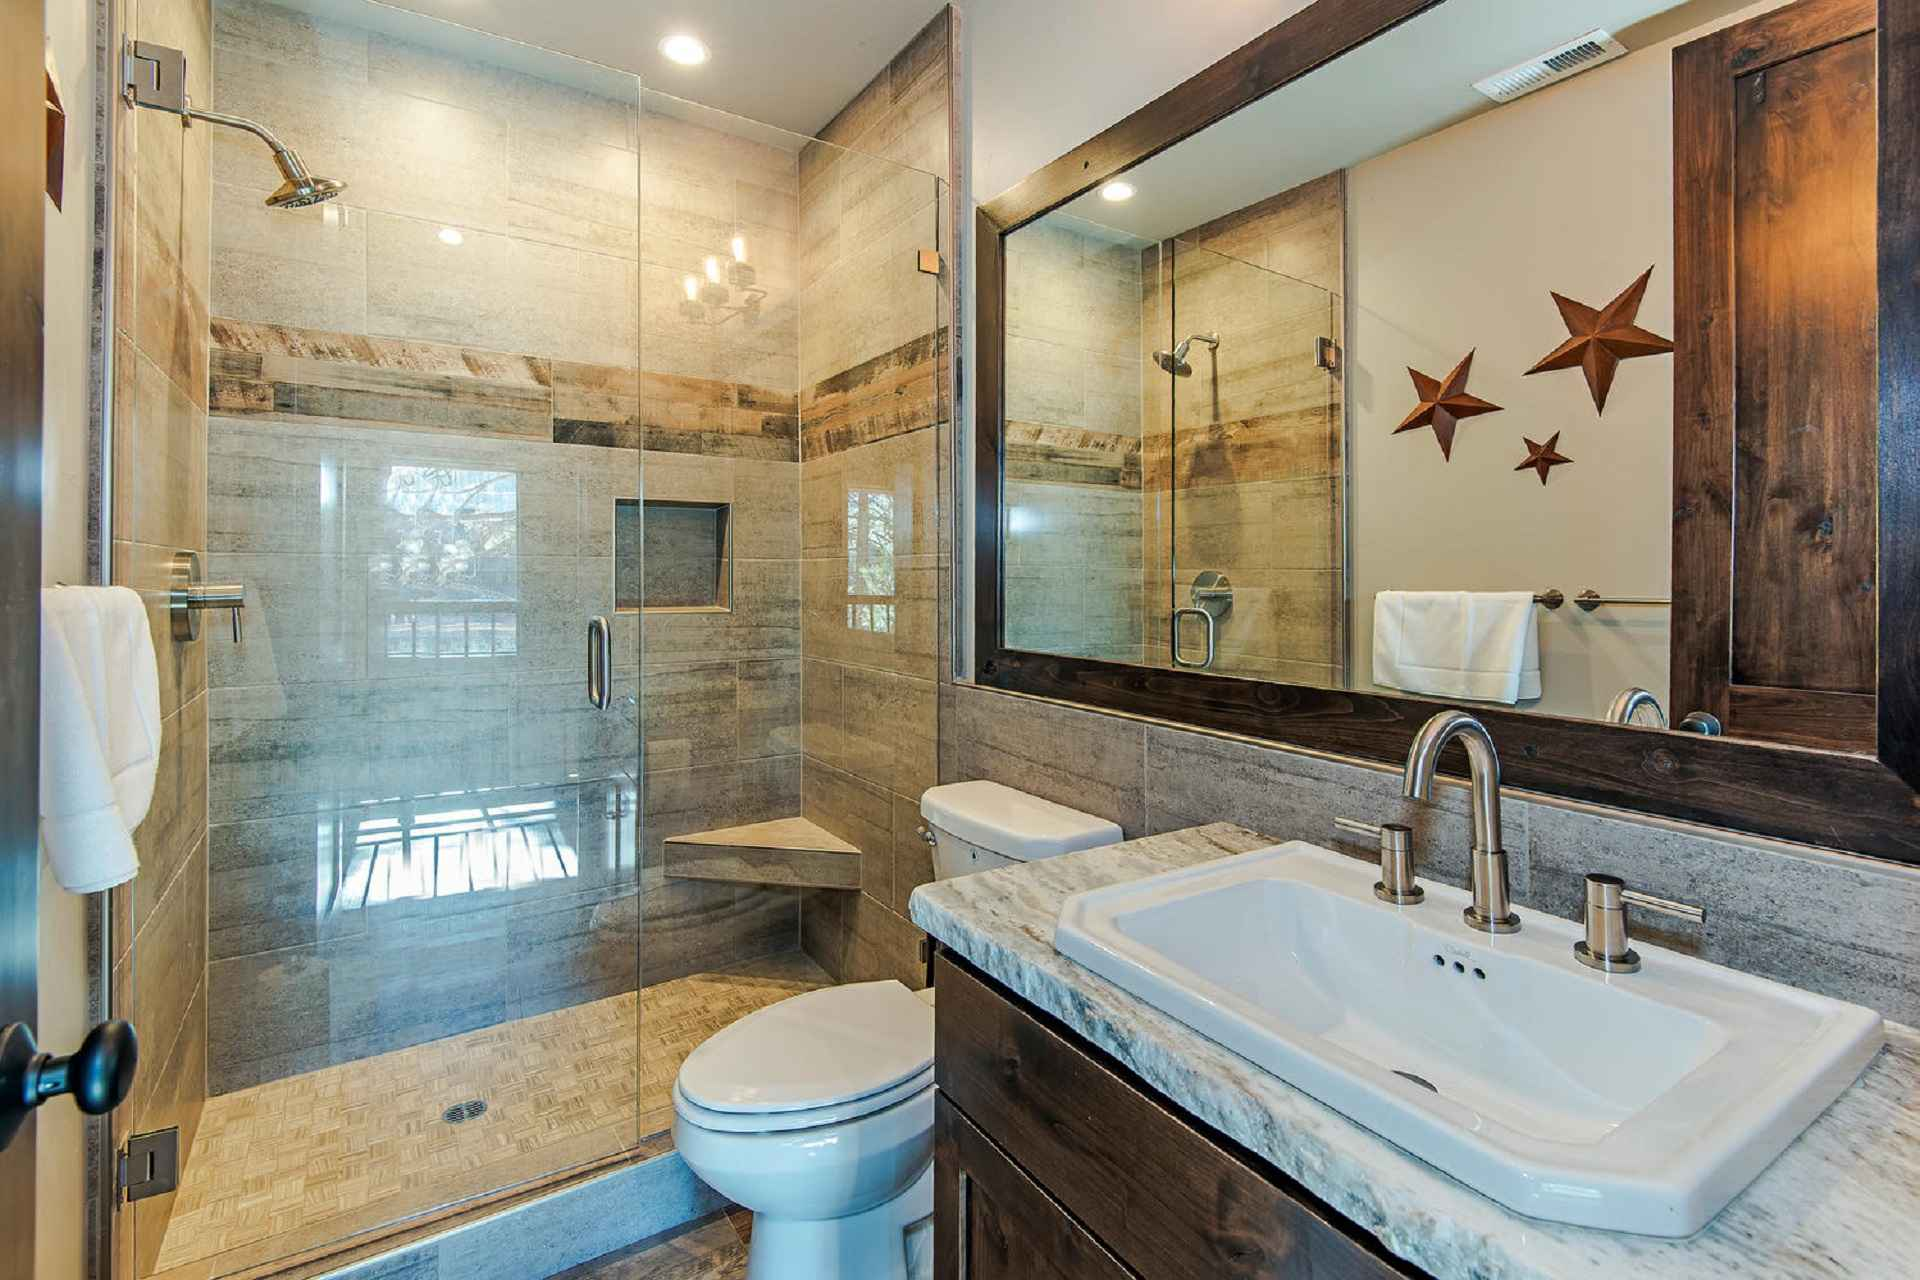 prop_3913_1546883791_7_bedroom_7_bath_heavenly_luxury_estate.jpg